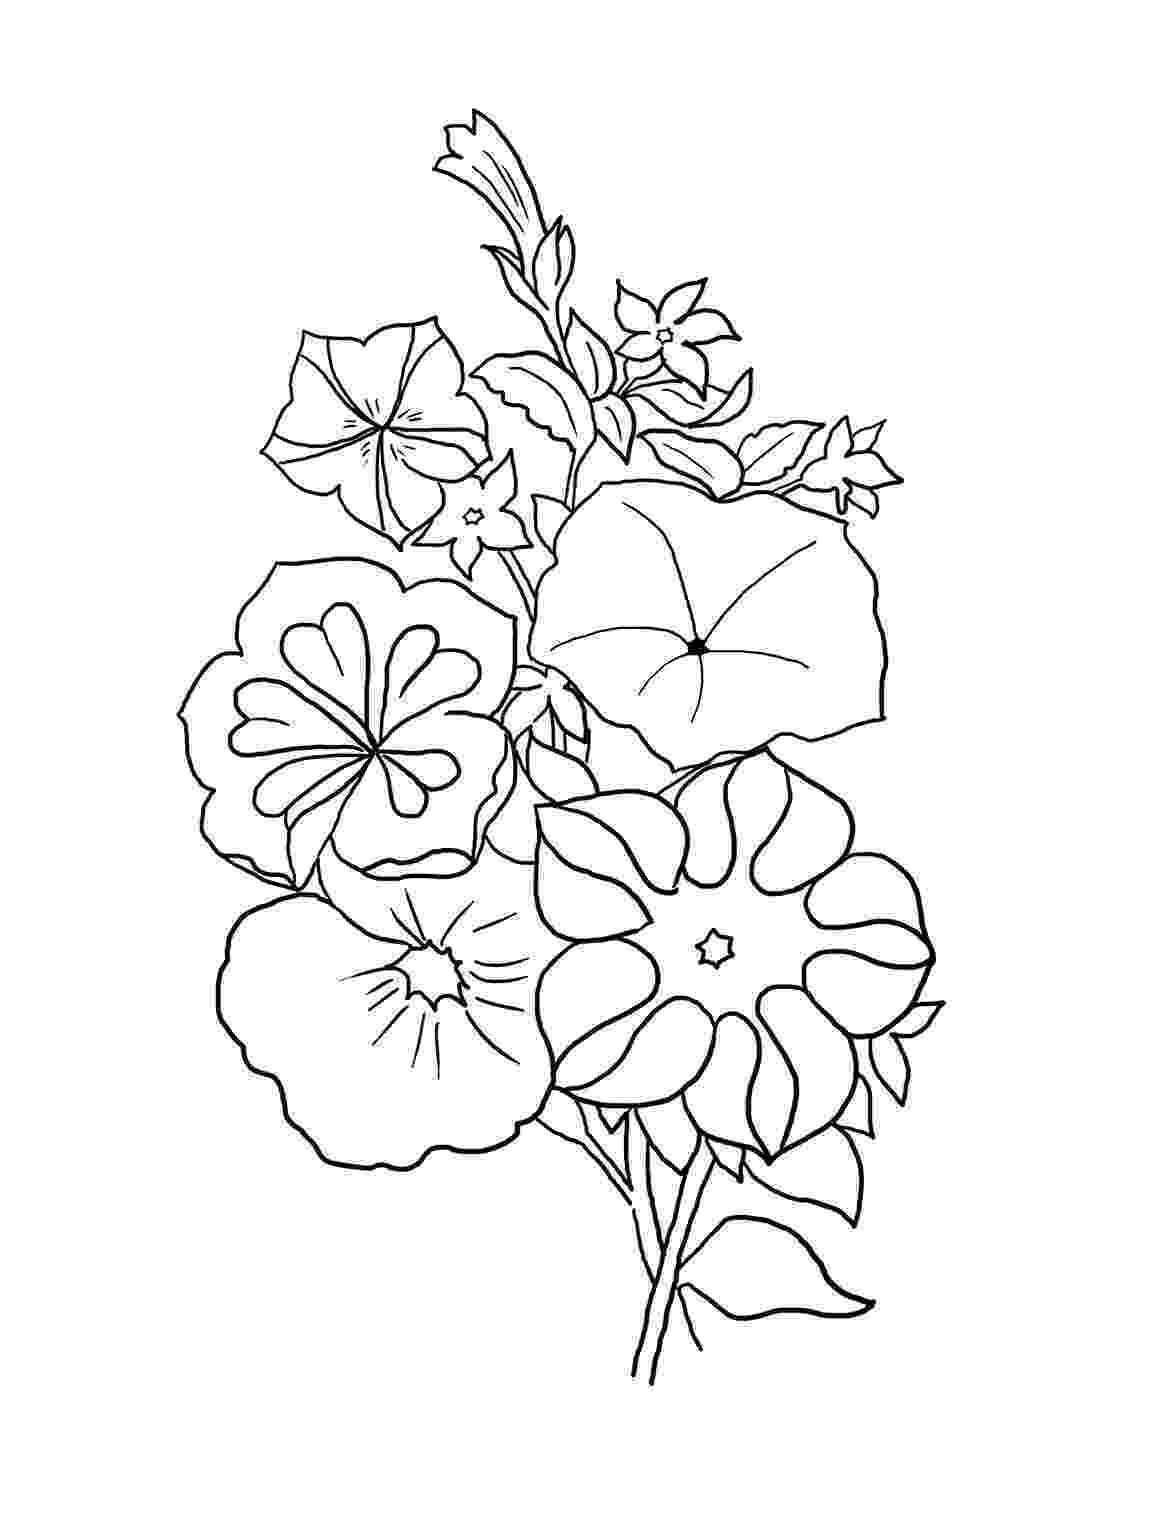 flower coloring book flower garden coloring pages to download and print for free book flower coloring